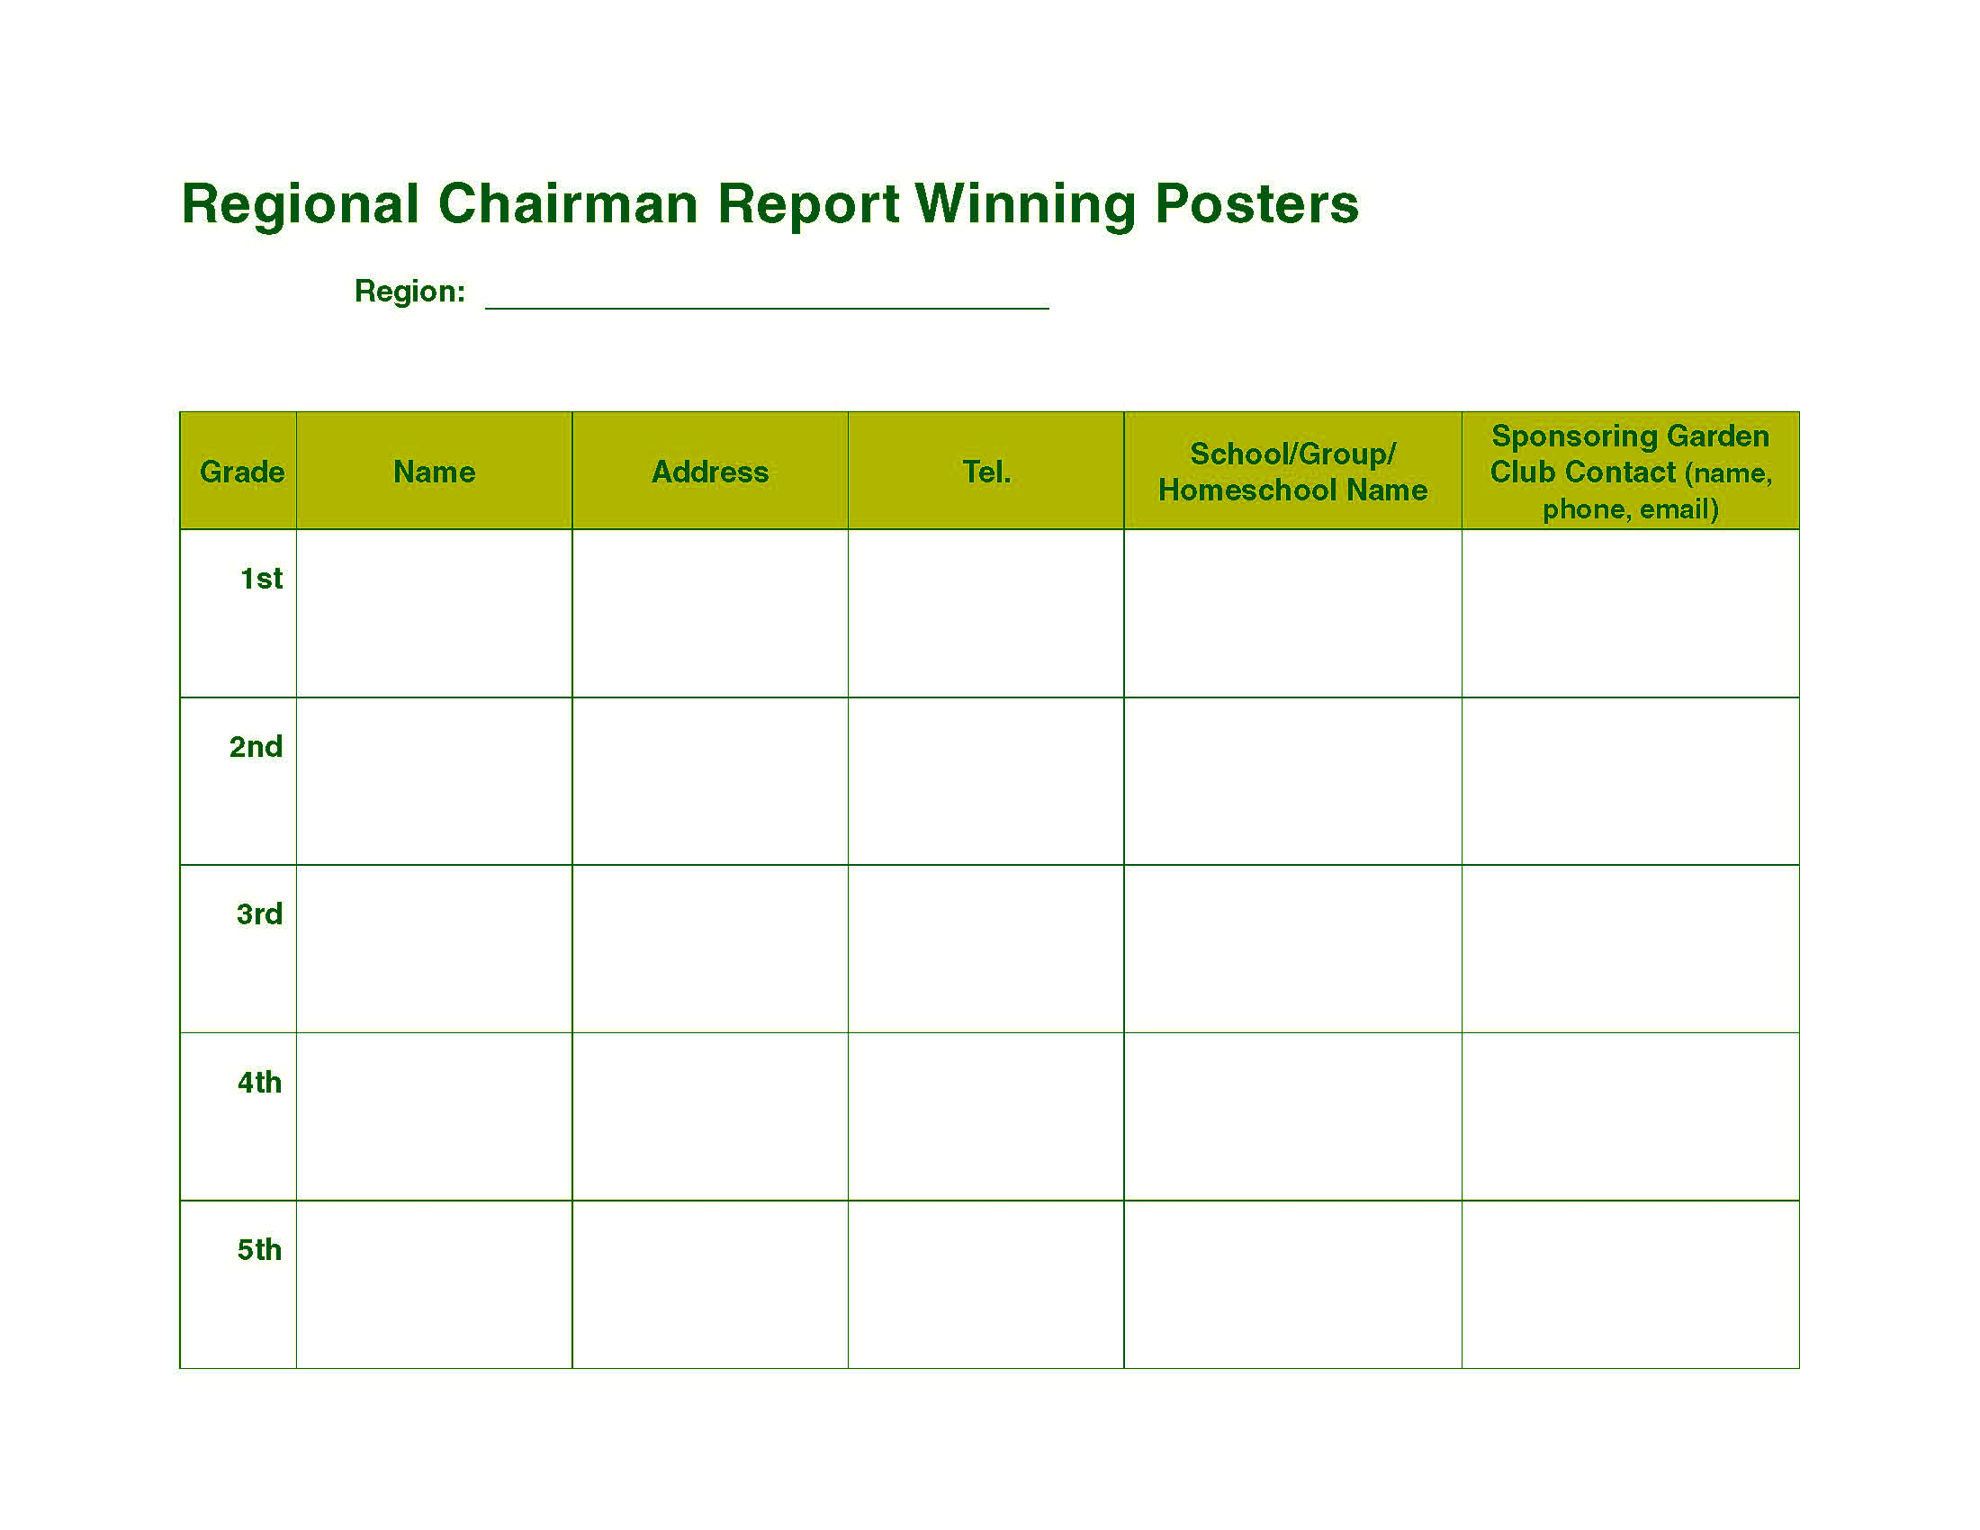 Picture of NGC Poster Contest - Regional Chairman Detailed/Outreach Report